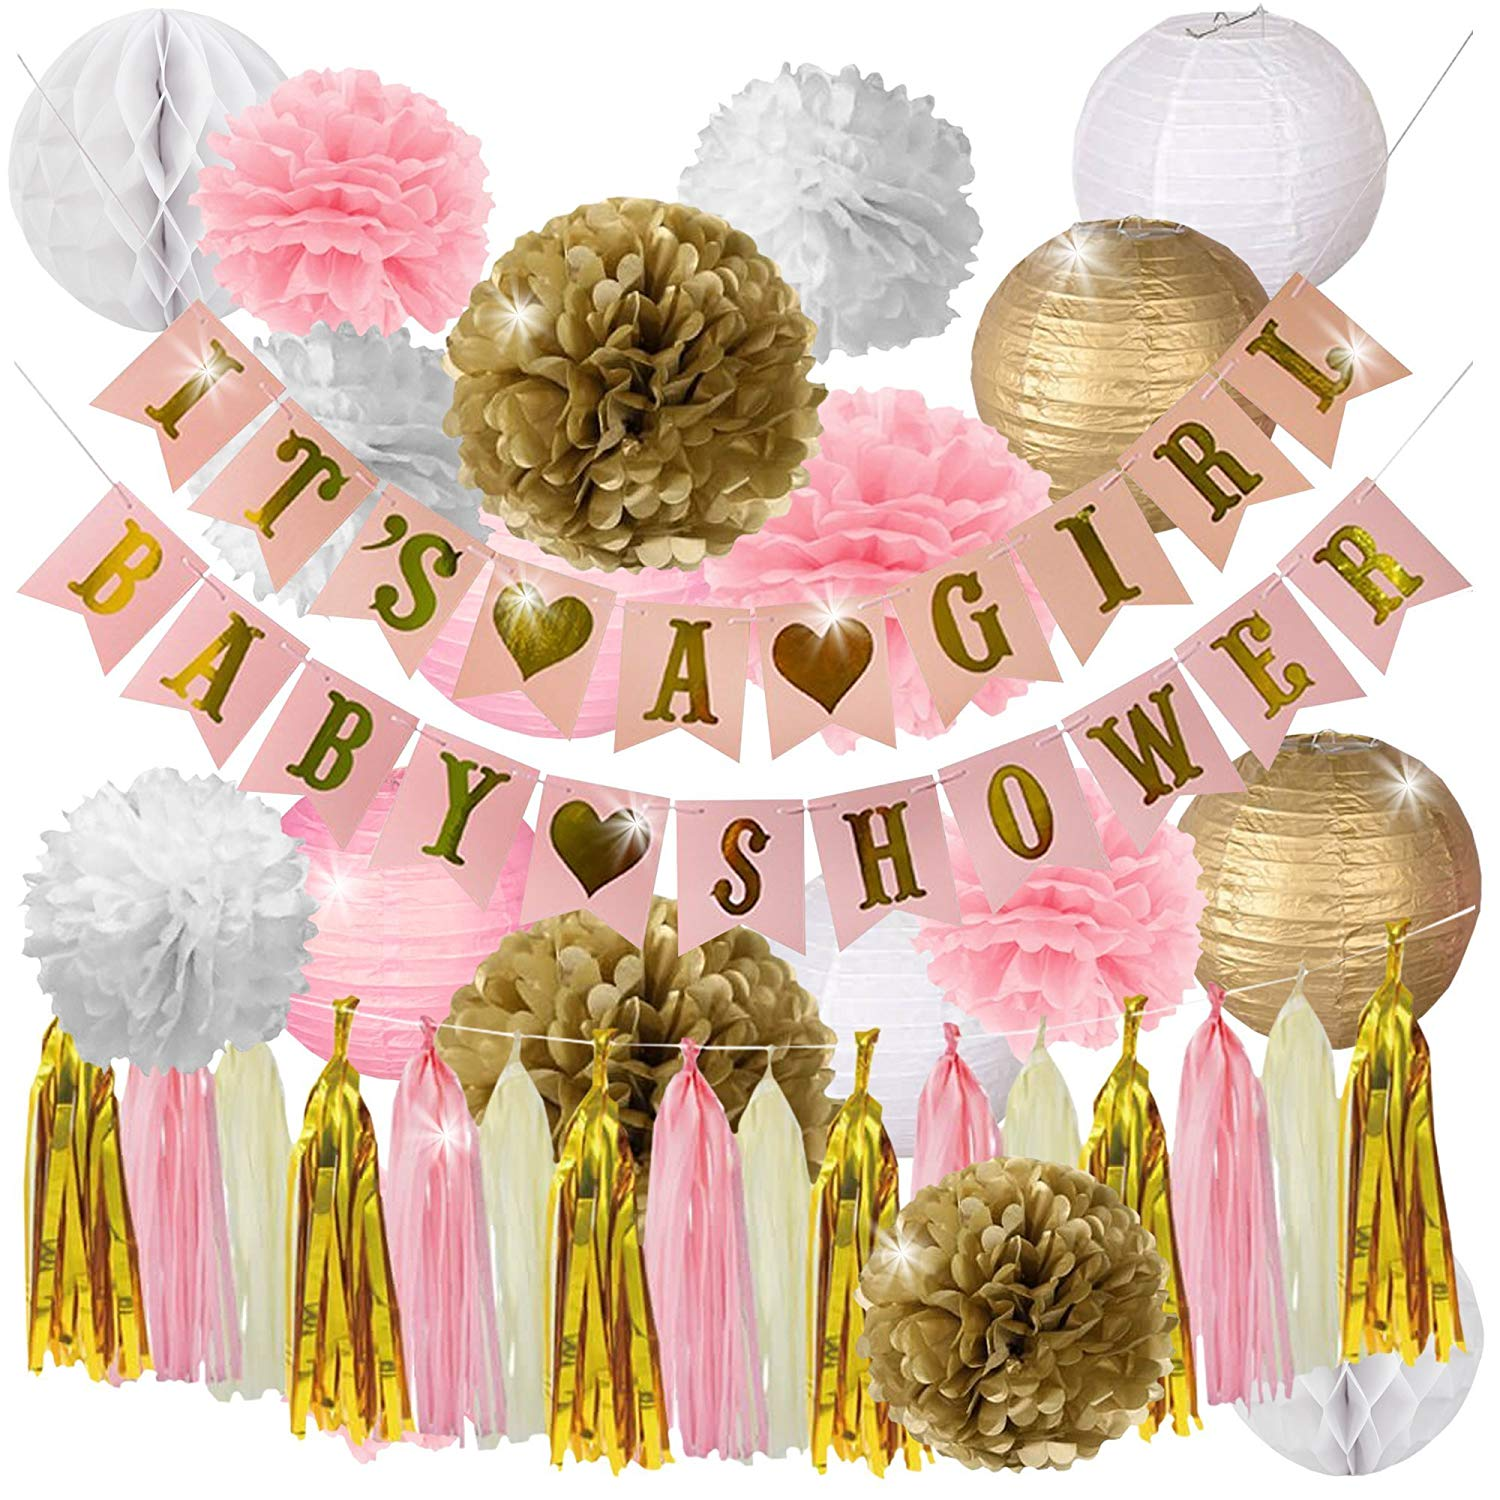 Pink and Gold Baby Shower Decorations for Girl- IT'S A GIRL & BABY SHOWER Garland Banner, Lanterns, Honeycomb Balls, and Tassel by Happy Hour! Party Supplies